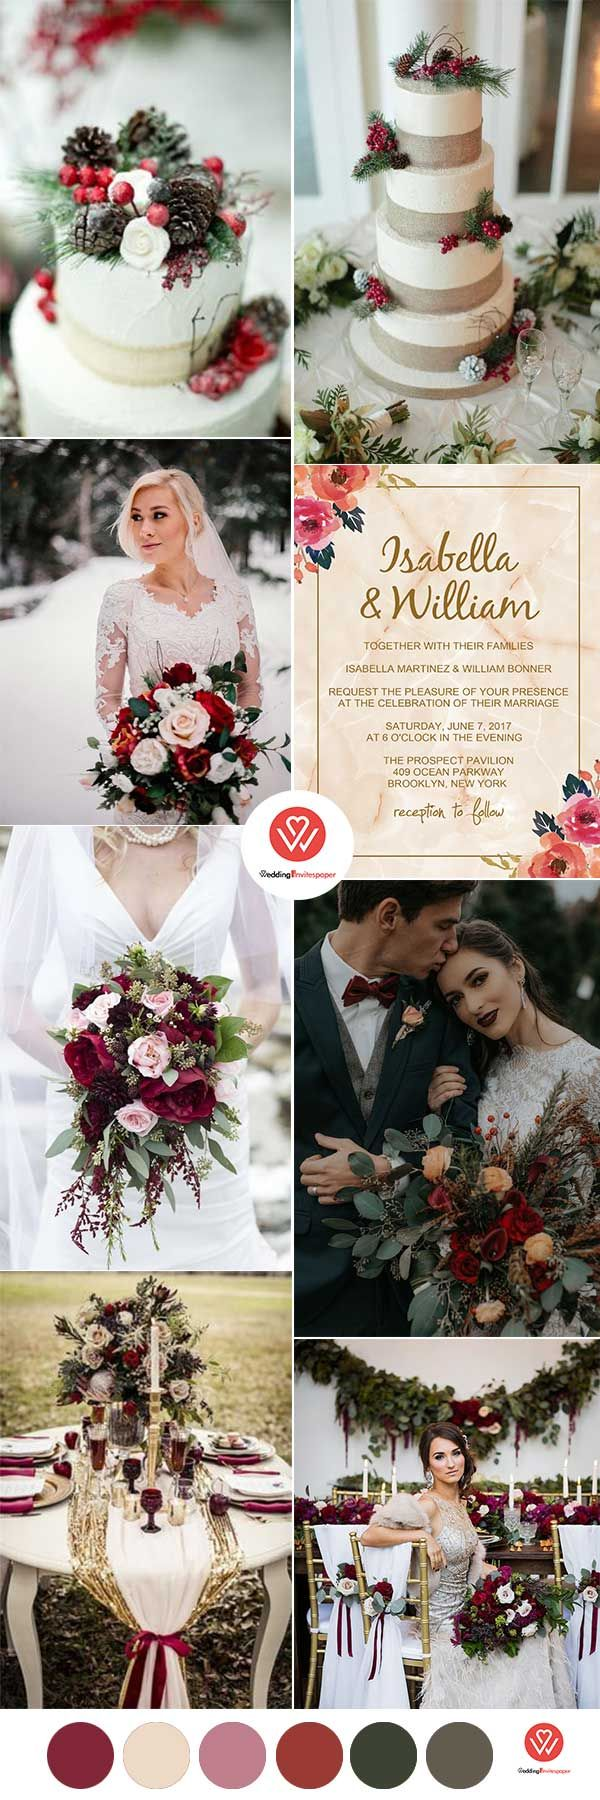 WEDDING COLORS: BREATH-TAKING RUSTIC CHIC CHRISTMAS WEDDING COLOR COMBOS - Wedding Invites Paper rustic chic pine winter wedding cake toppers/ burgundy winter wedding bouquets/ modern marble wedding invitations